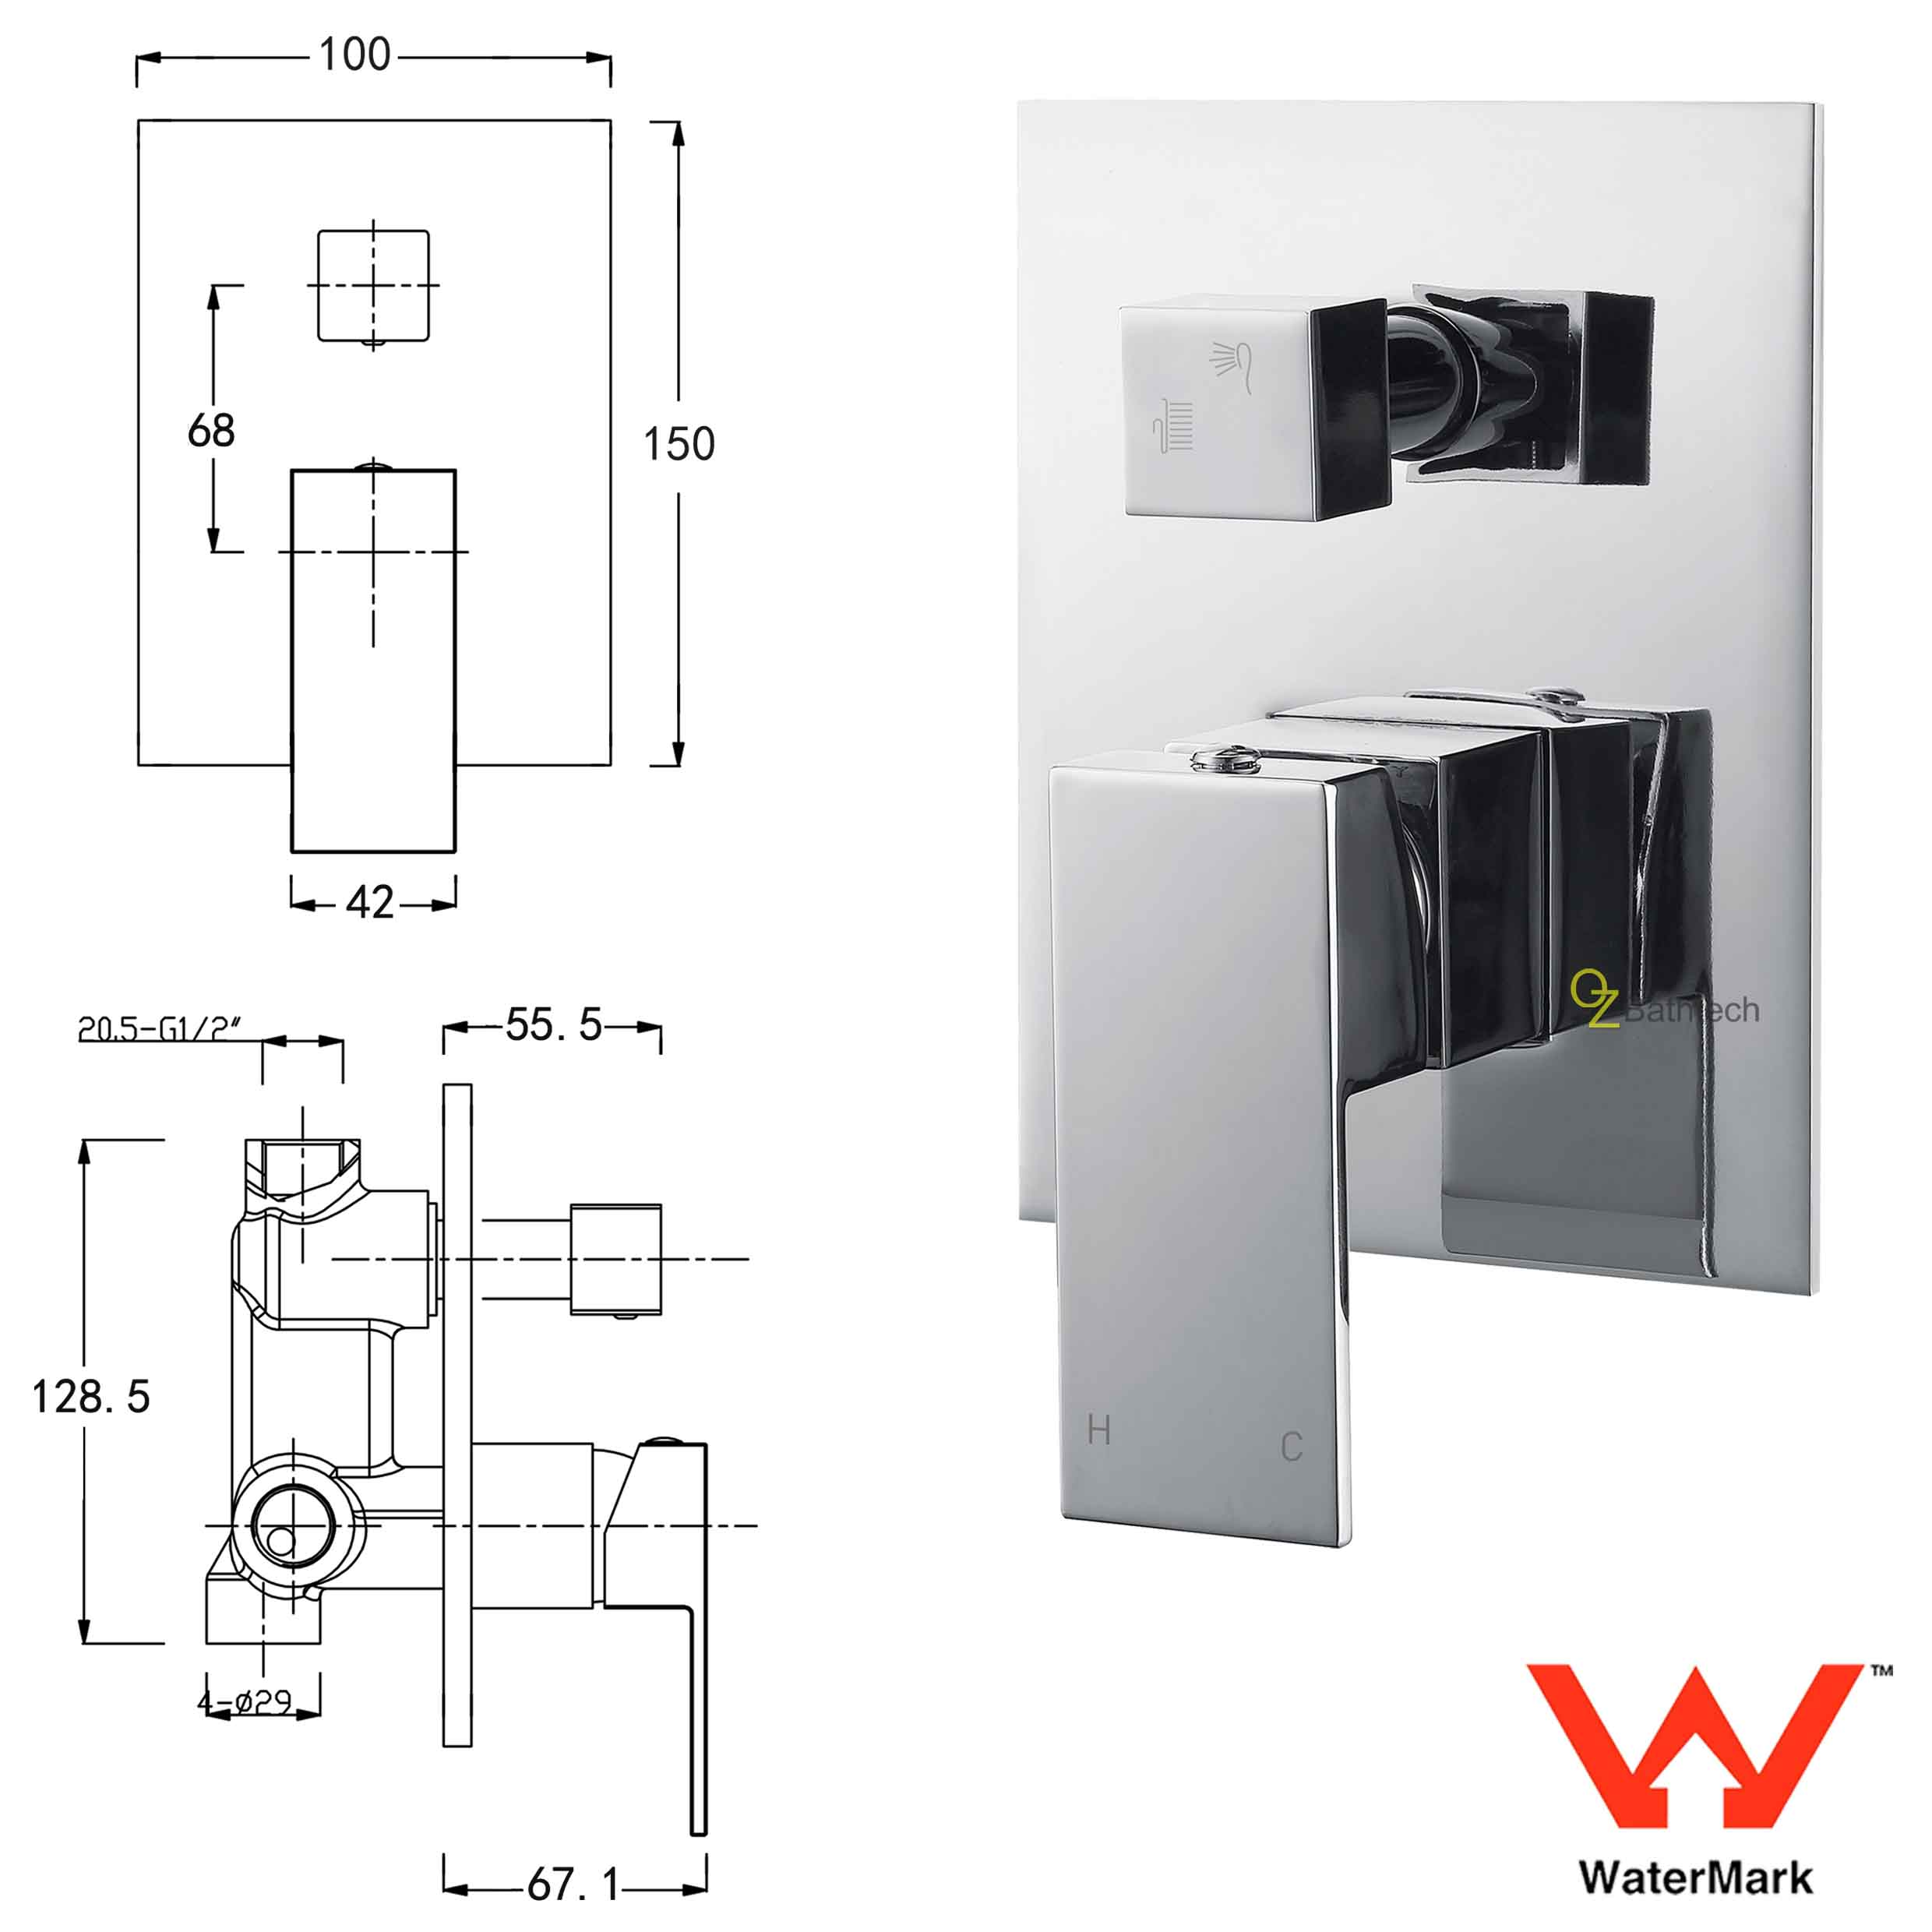 Wall Square Shower Mixer 2 Way Bath Control Diverter On Off Valve Schematic Watermark Brass Tap Spout